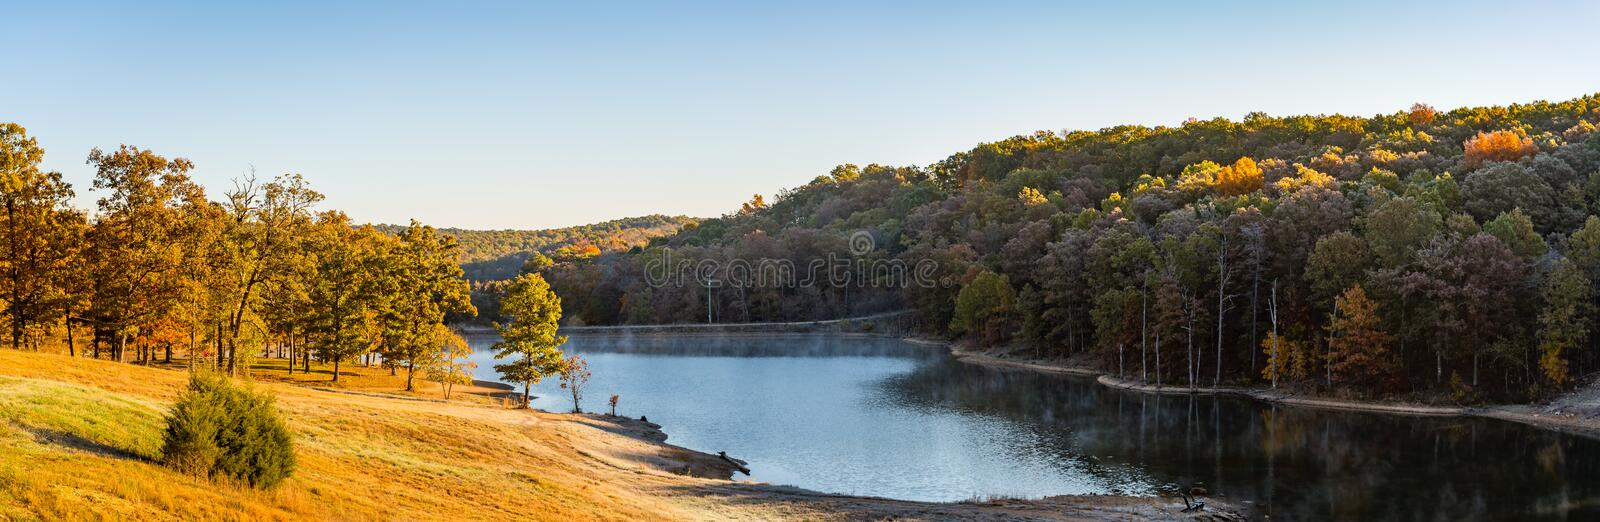 Daybreak by a stream in the Ozarks mountains of Missouri stock photo